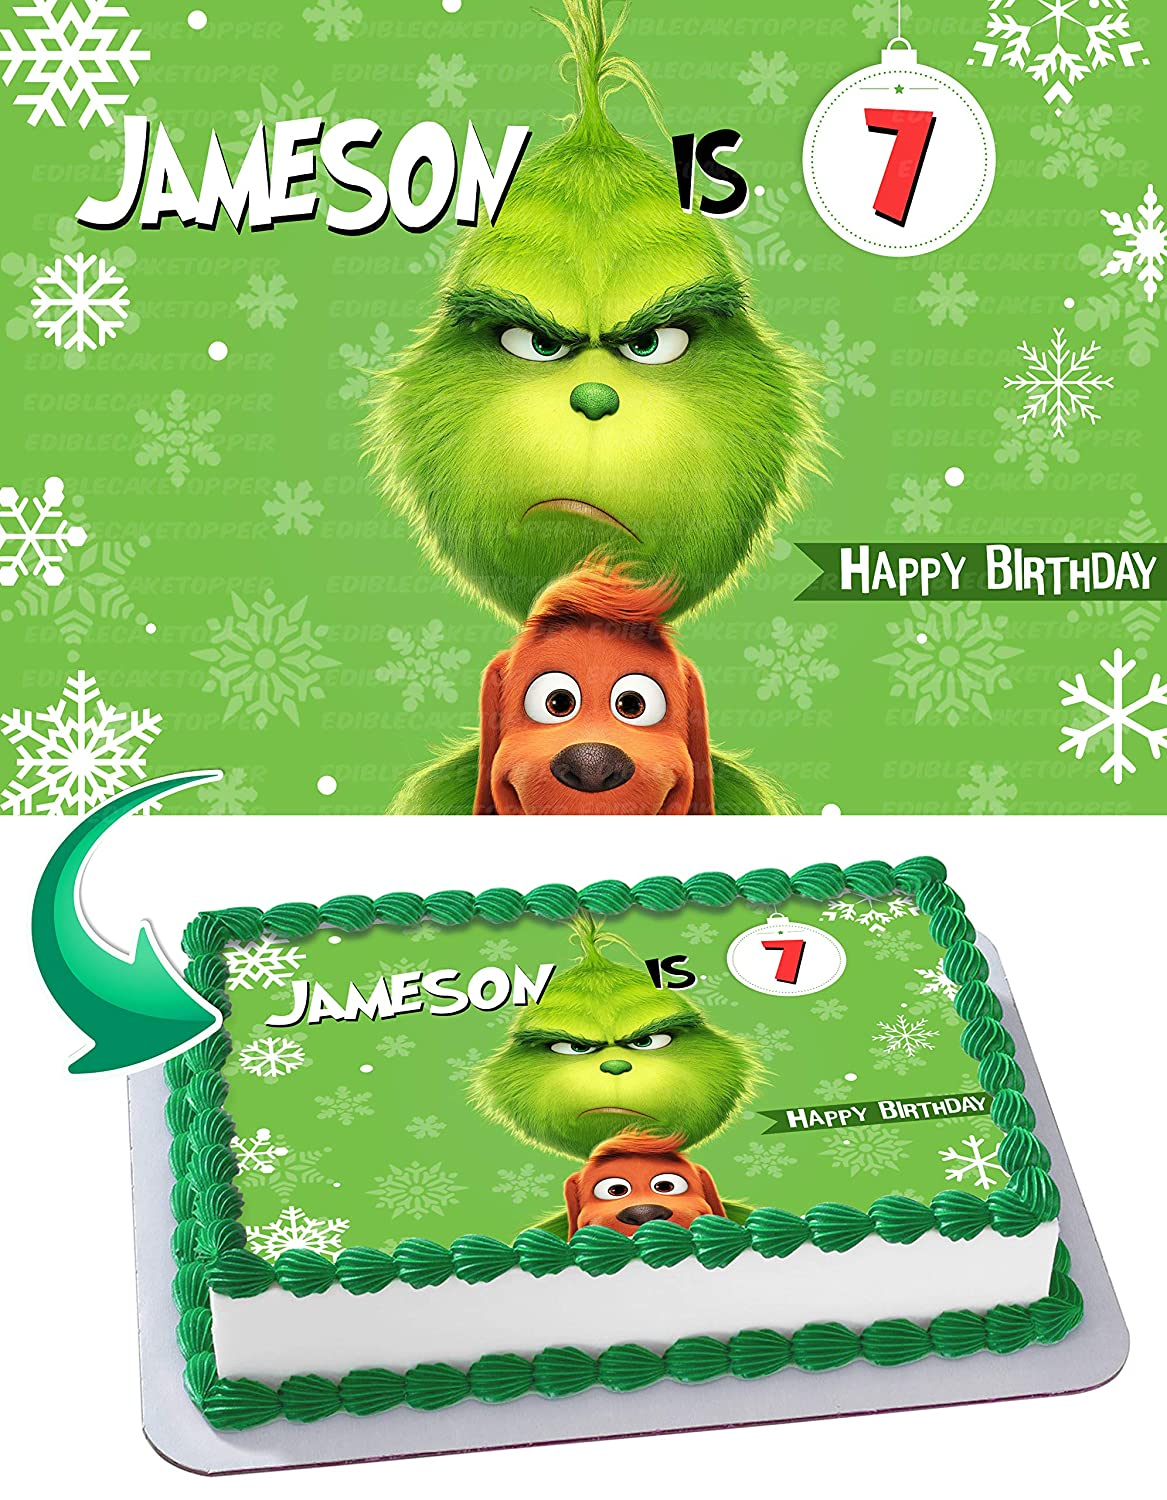 THE GRINCH Christmas Edible Cake Image Topper Personalized Birthday 1 4 Sheet Custom Party Sugar Frosting Transfer Fondant Best